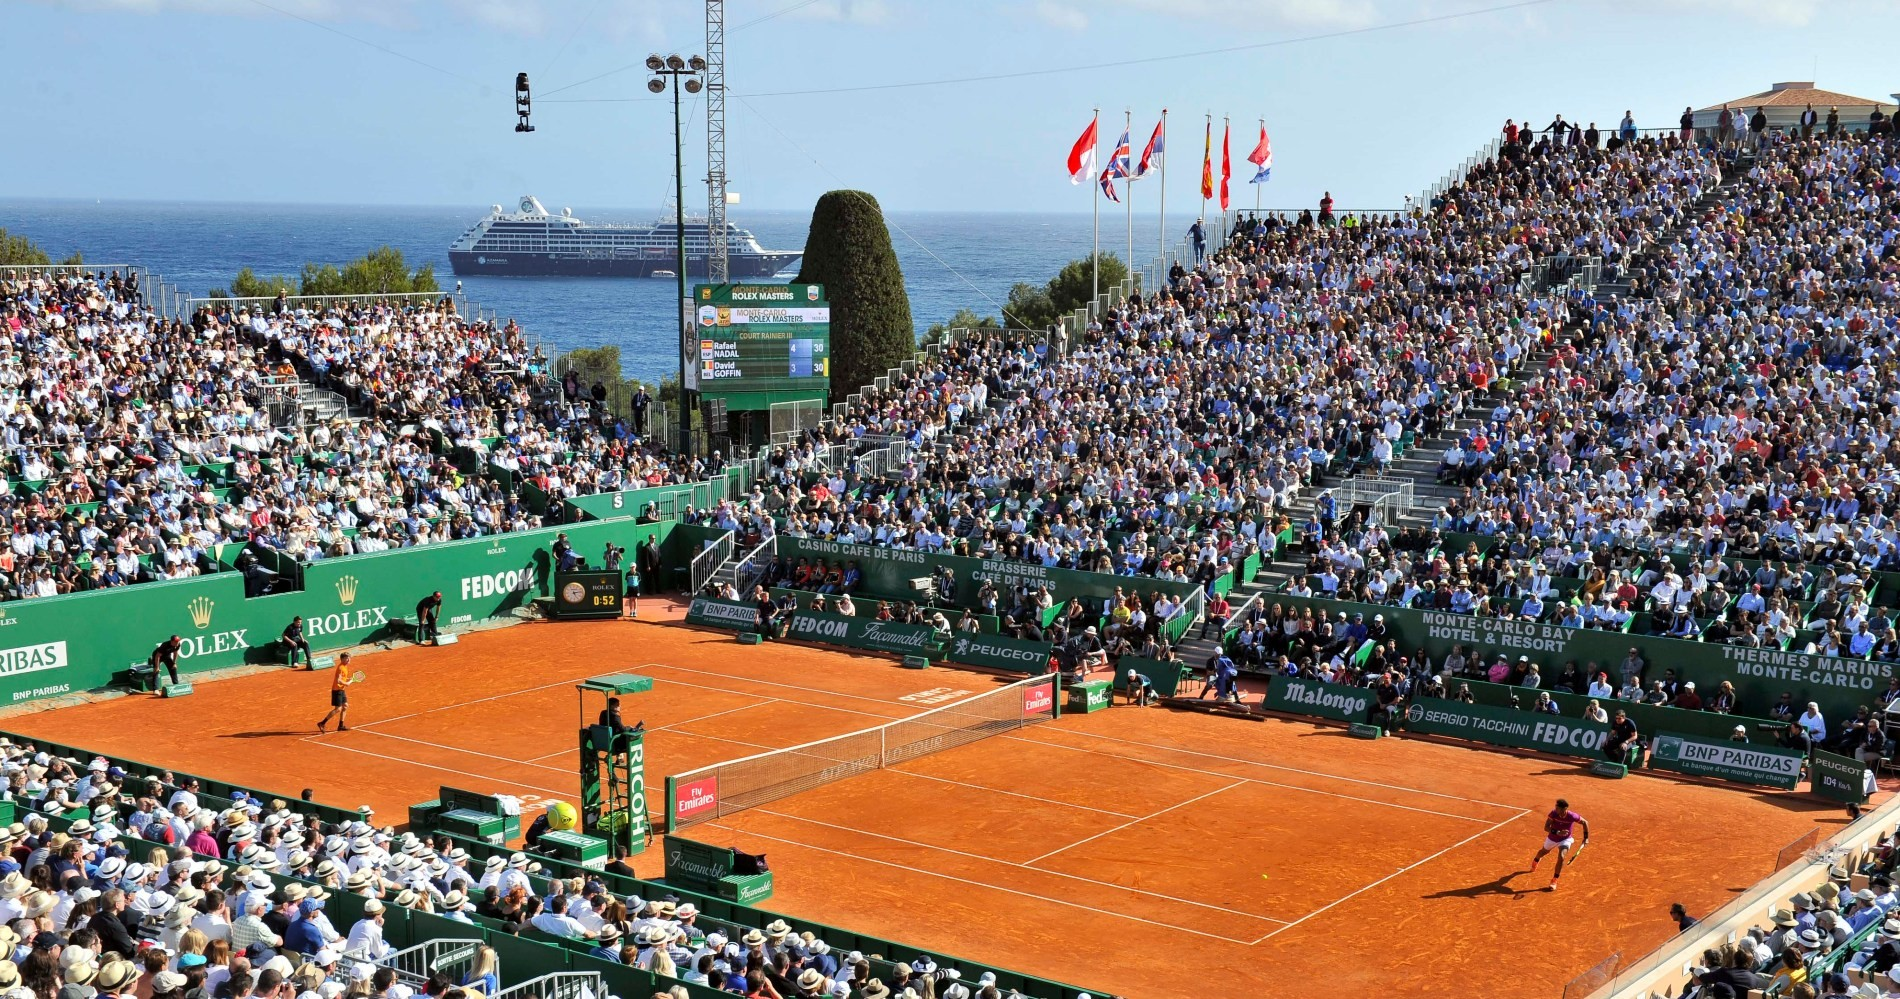 Monte Carlo centre court features a breathtaking view.